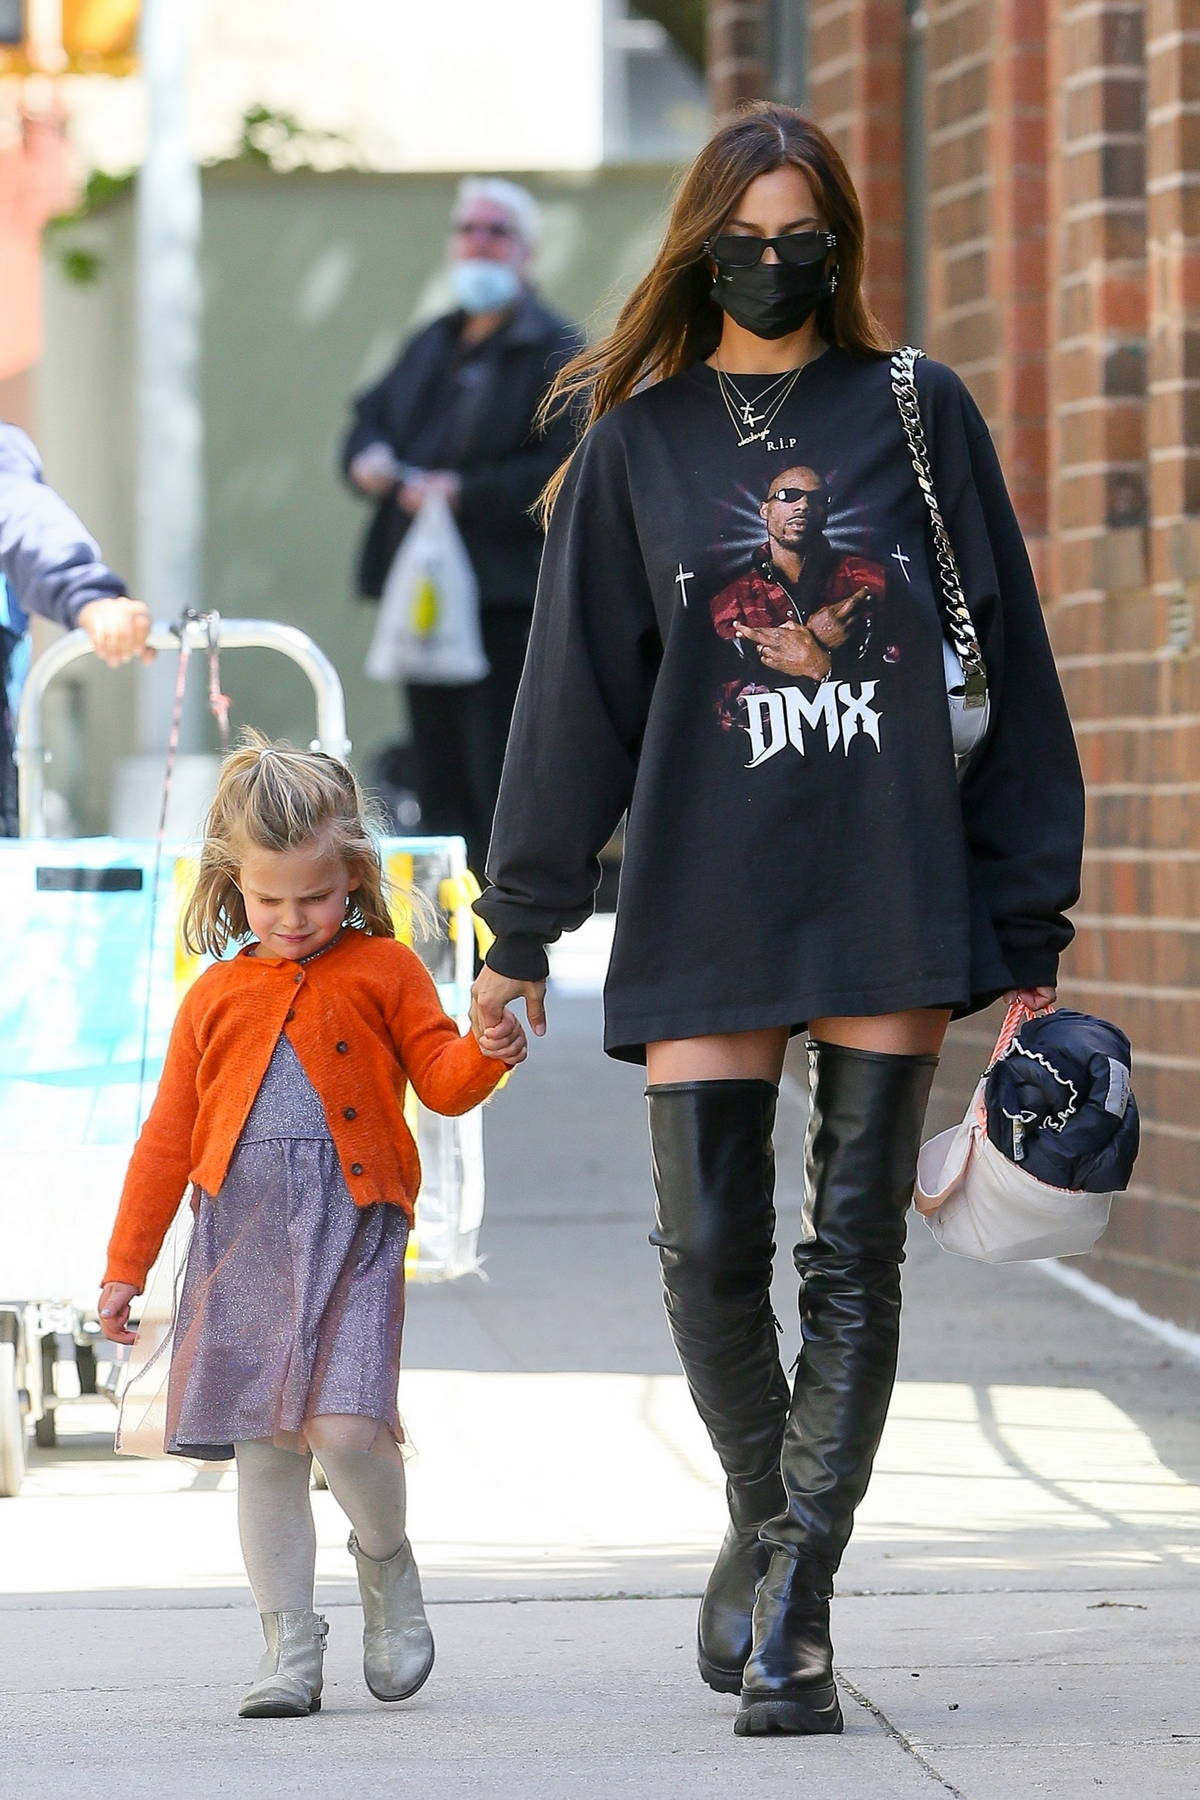 Irina Shayk dons an oversized 'DMX' sweatshirt and a pair of thigh-high  boots while stepping